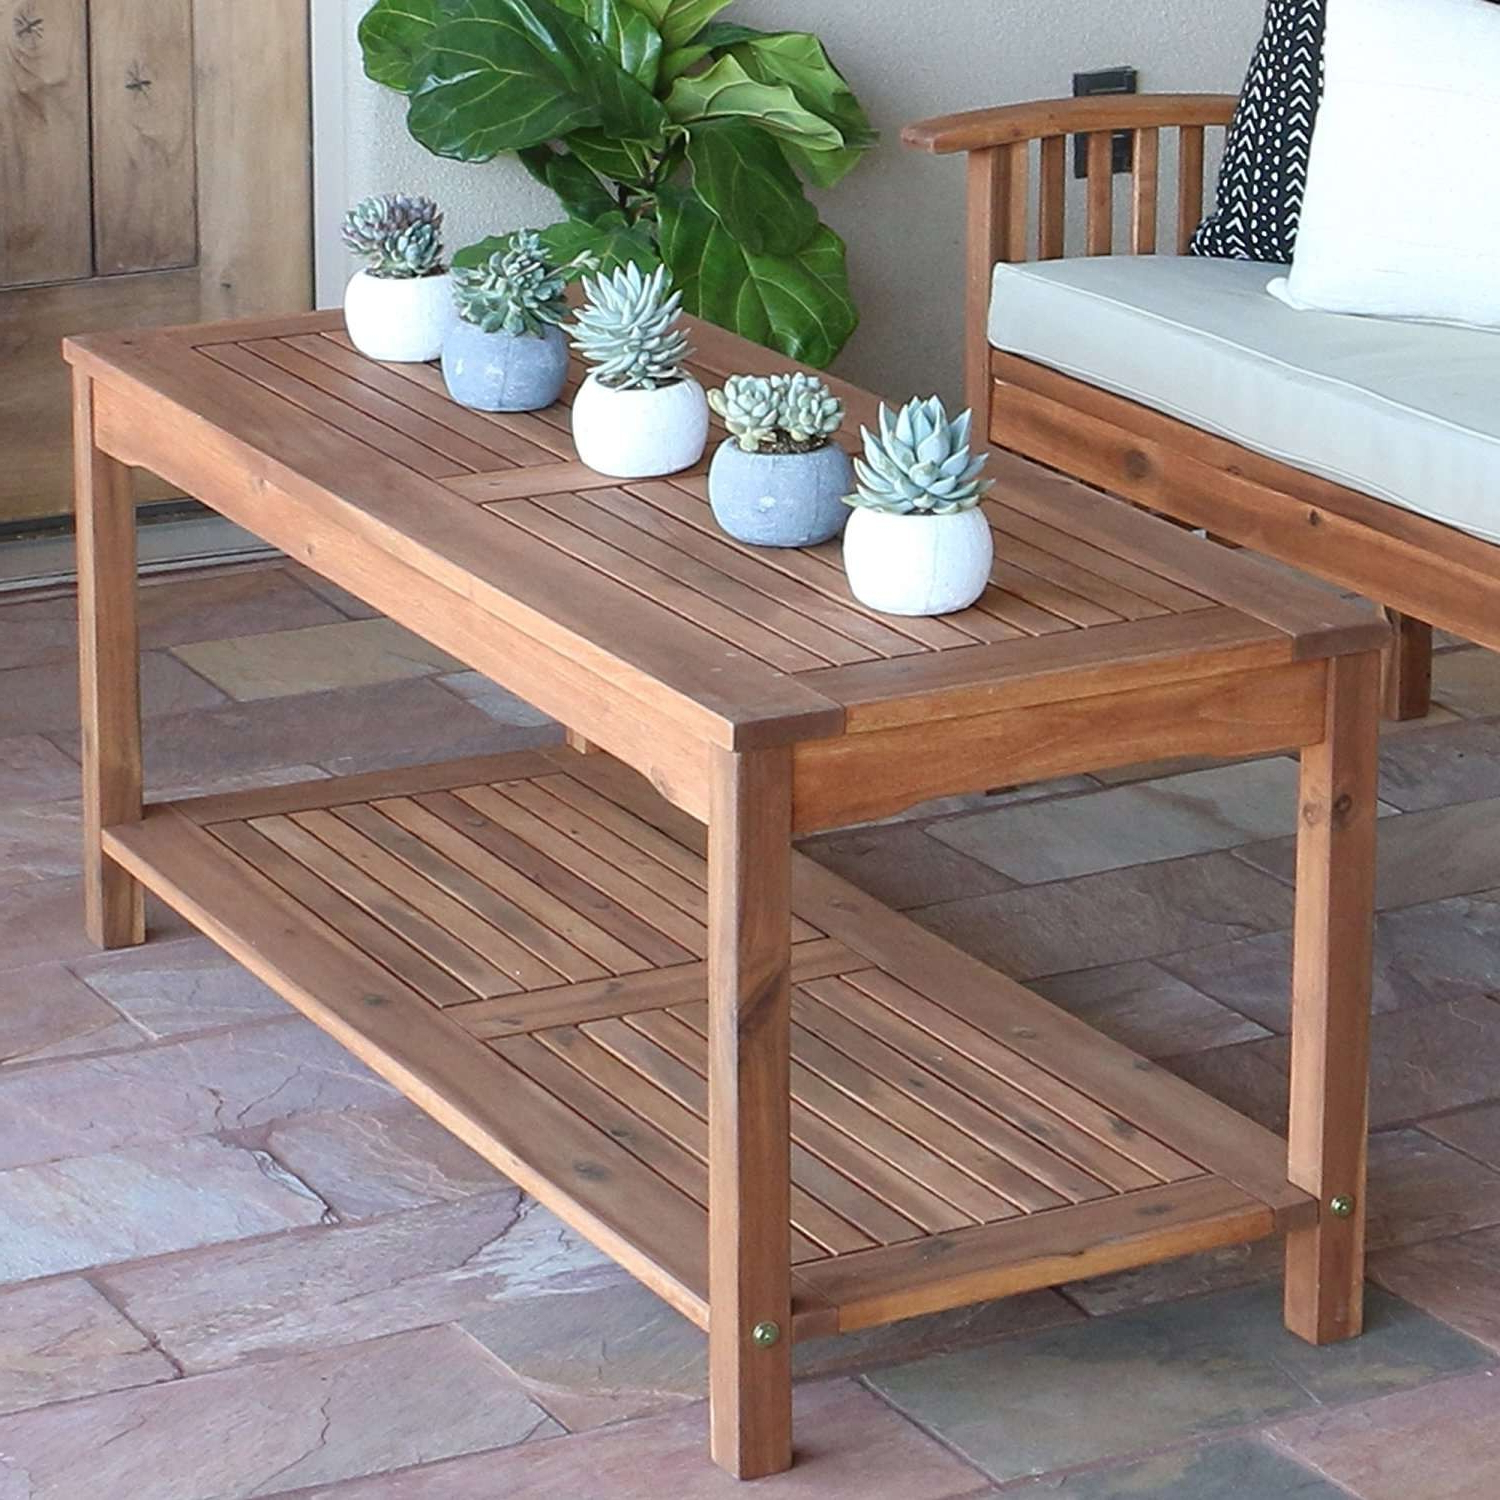 9 Crate And Barrel Concrete Coffee Table Gallery | Coffee Tables Ideas Pertaining To Parsons Walnut Top & Brass Base 48x16 Console Tables (View 14 of 20)